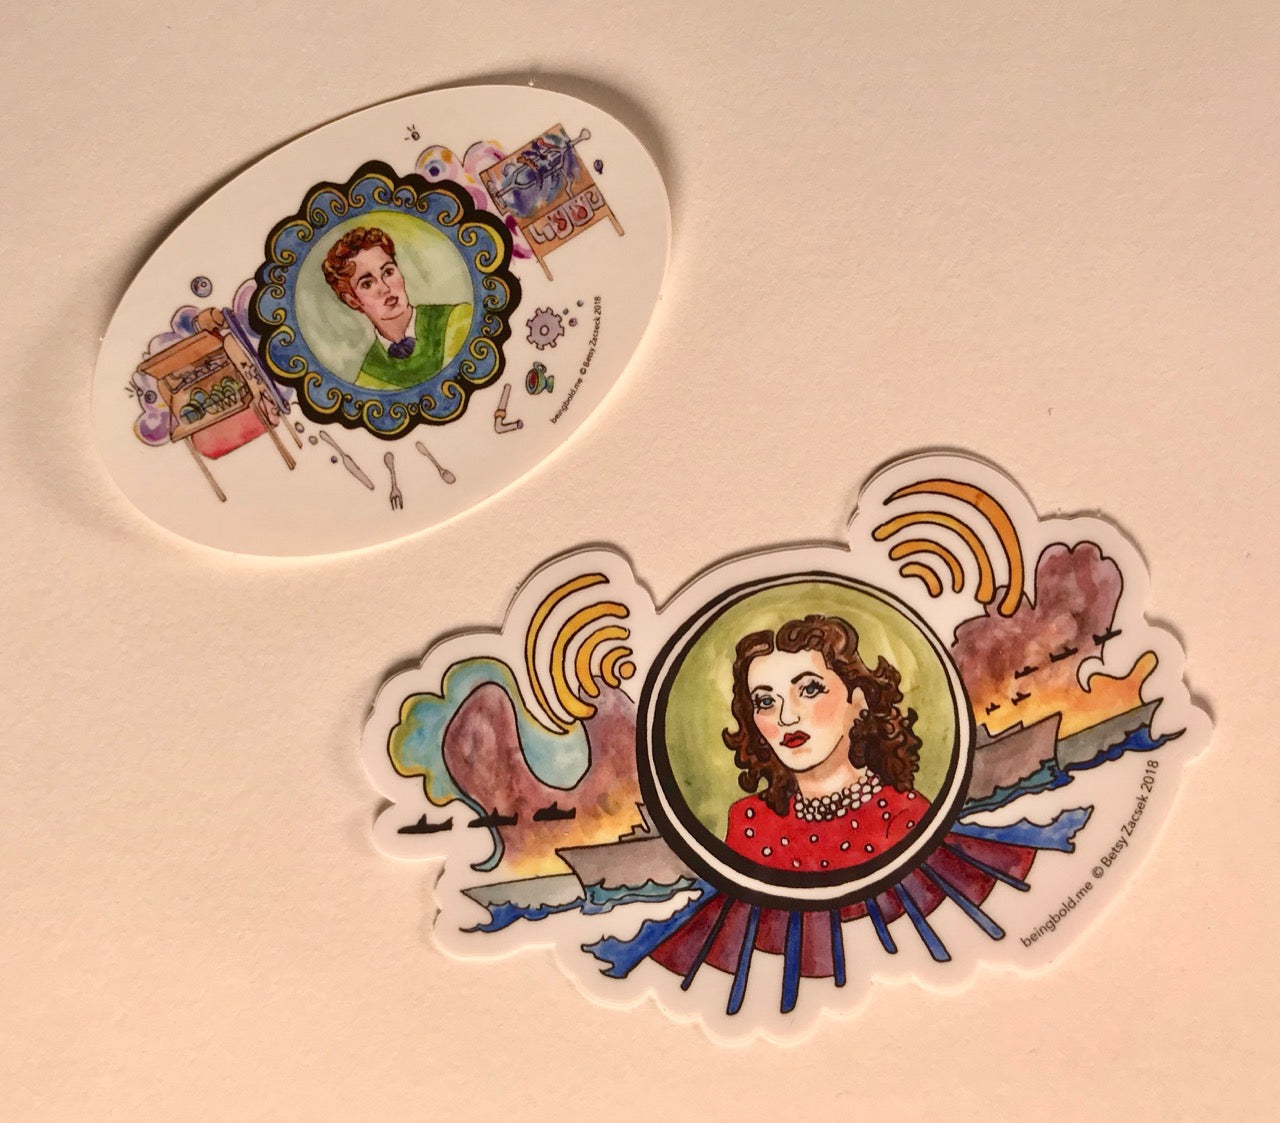 Set of 2 Stickers, Hedy Lamarr & Josephine Cochrane, Inventors